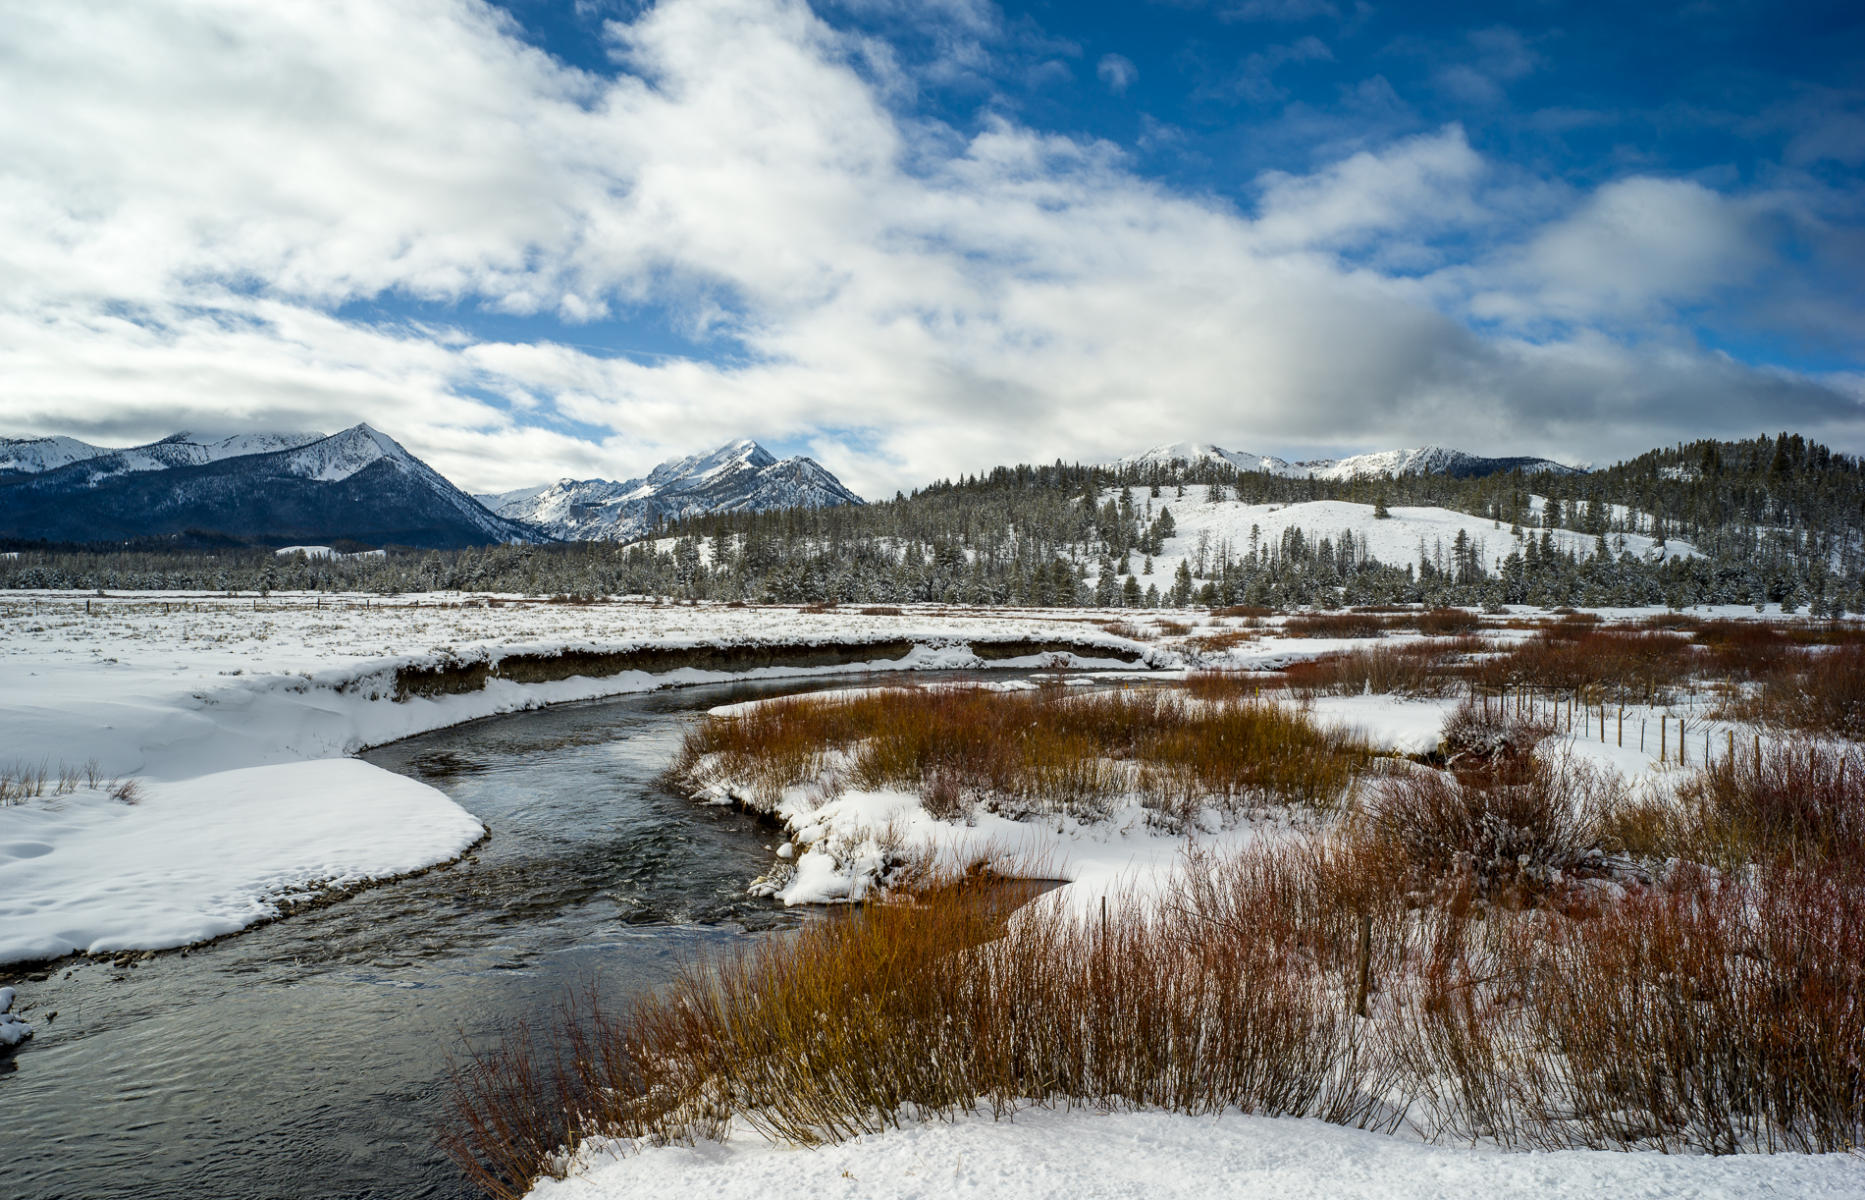 Fisher Creek, Stanley Basin : landscapes : TIMOTHY FLOYD PHOTOGRAPHER, NATURE PHOTOGRAPHY, PHOTO ESSAYS, PHOTOJOURNALISM